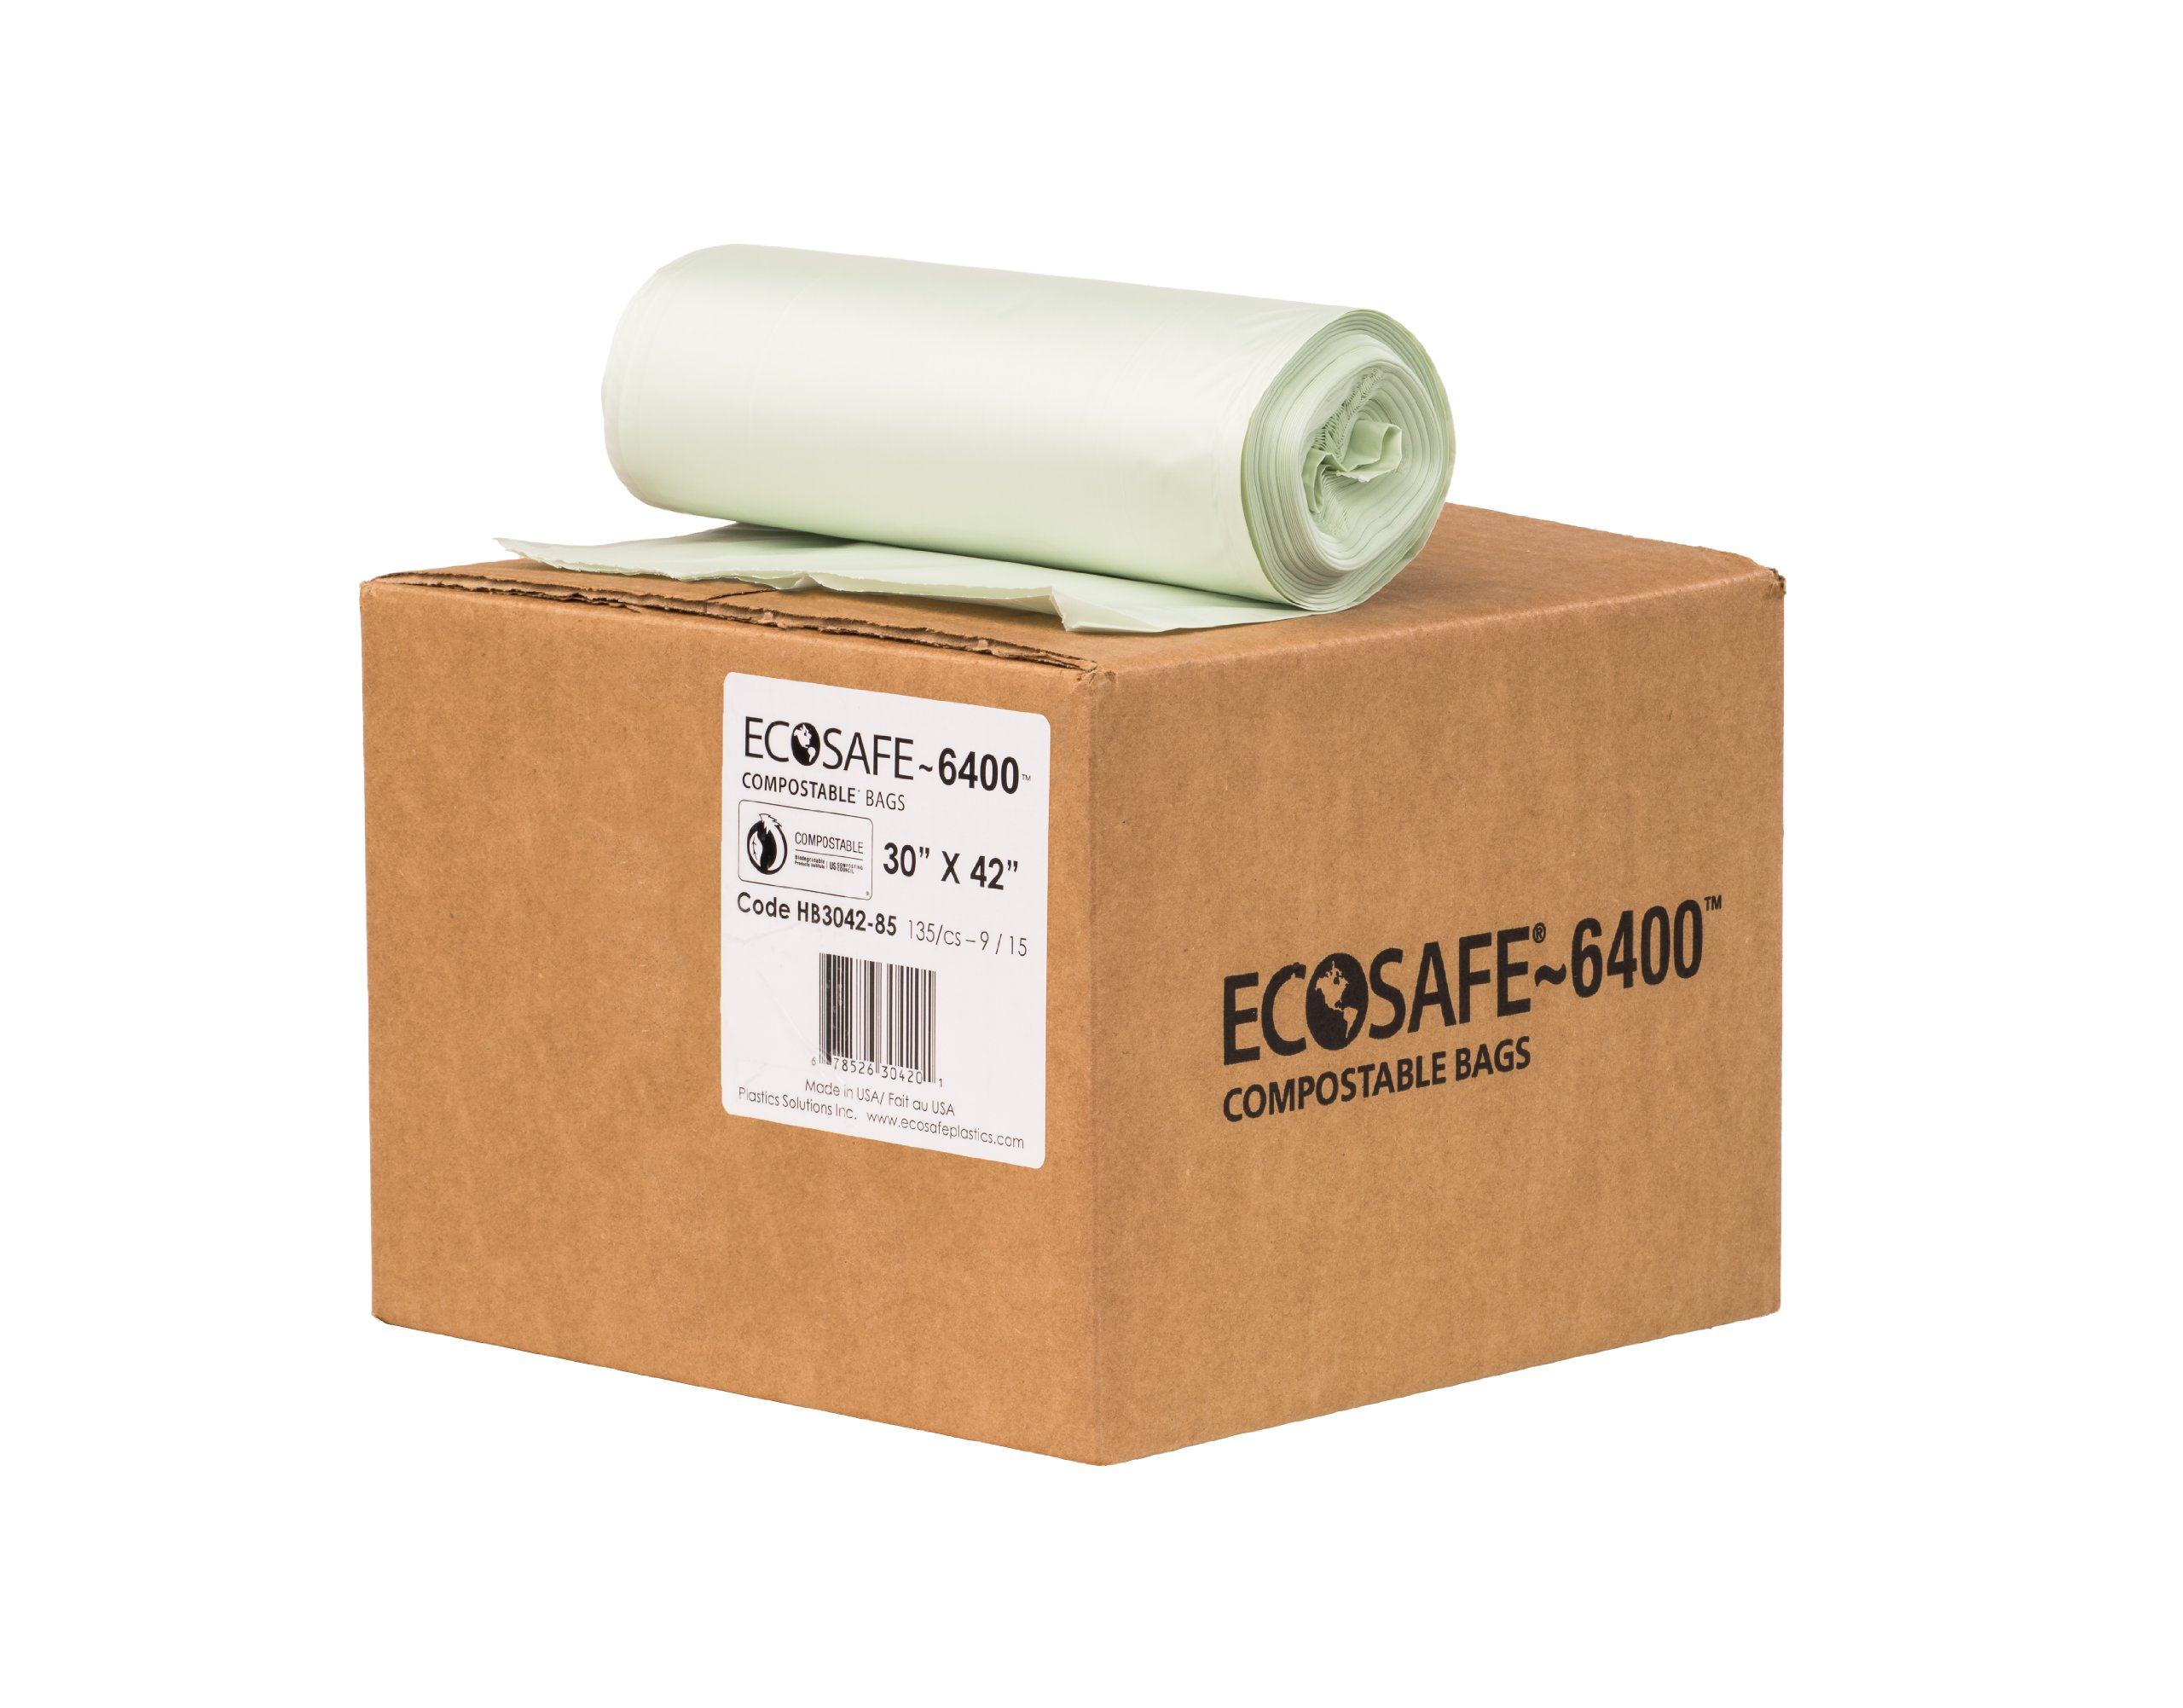 EcoSafe-6400 HB3042-85 Compostable Bag, Certified Compostable, 35-Gallon, Green (Pack of 135) by EcoSafe